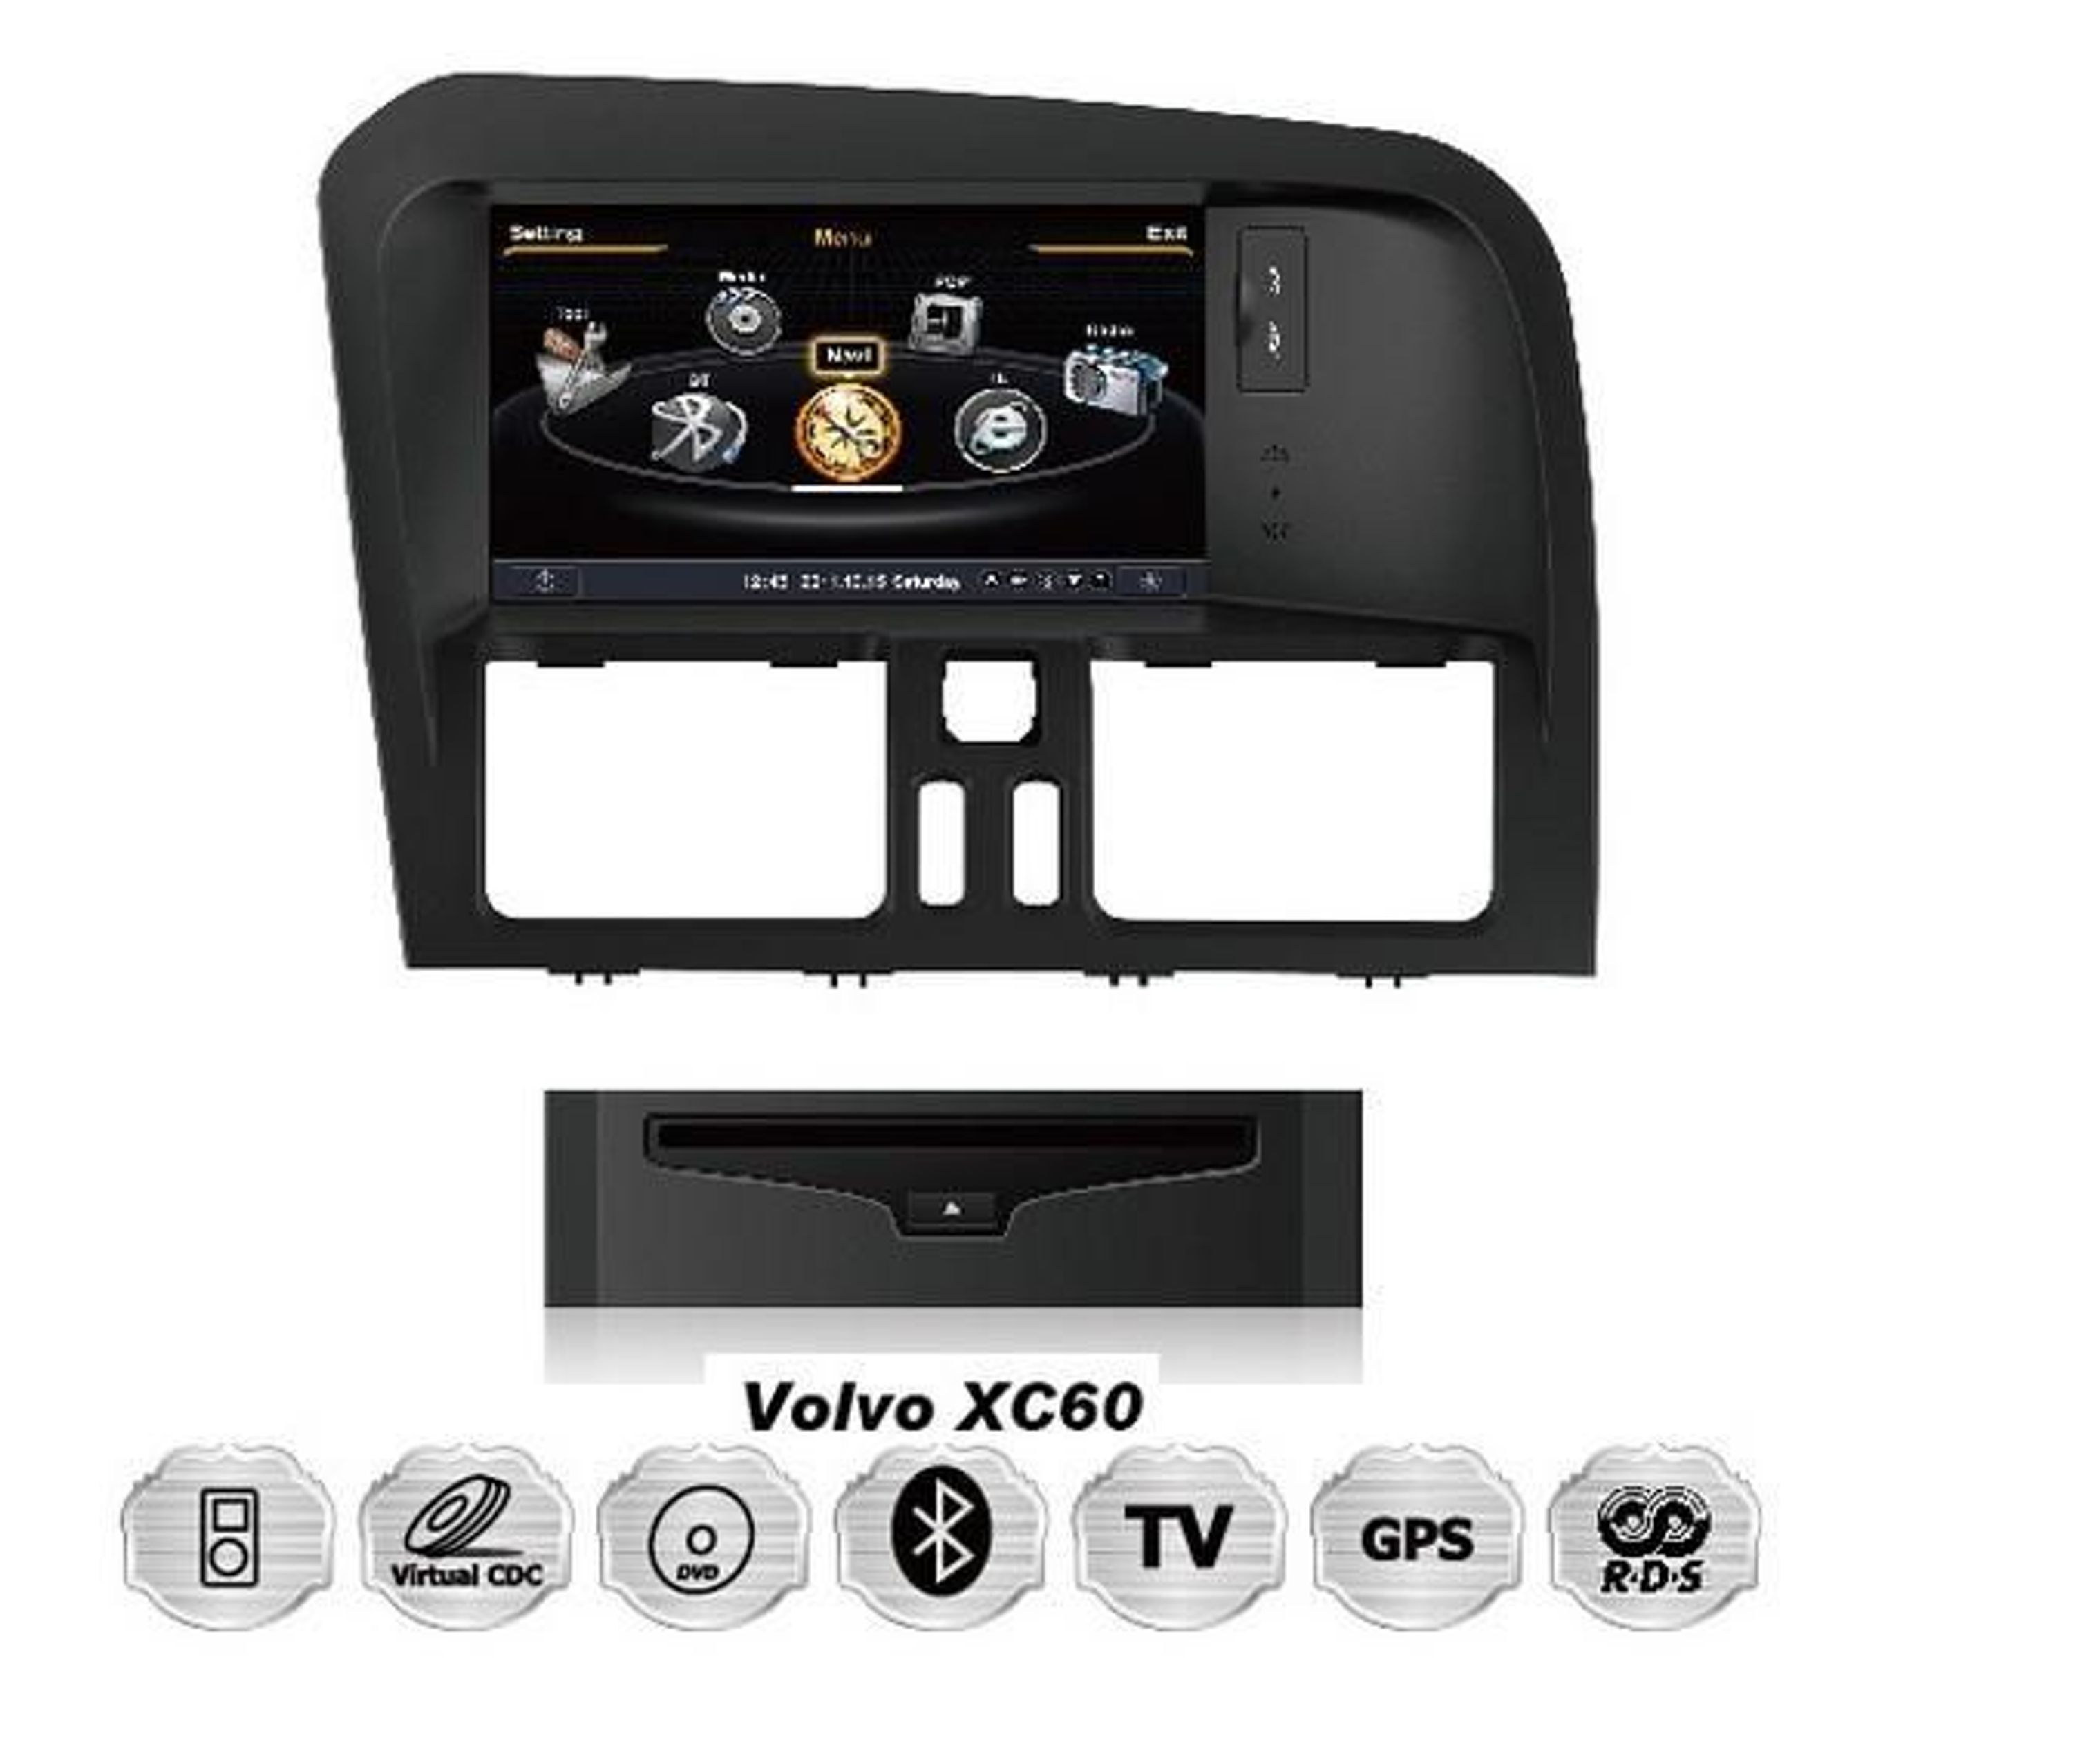 volvo xc60 s100 oem dvd gps navigationssystem kaufen bei. Black Bedroom Furniture Sets. Home Design Ideas